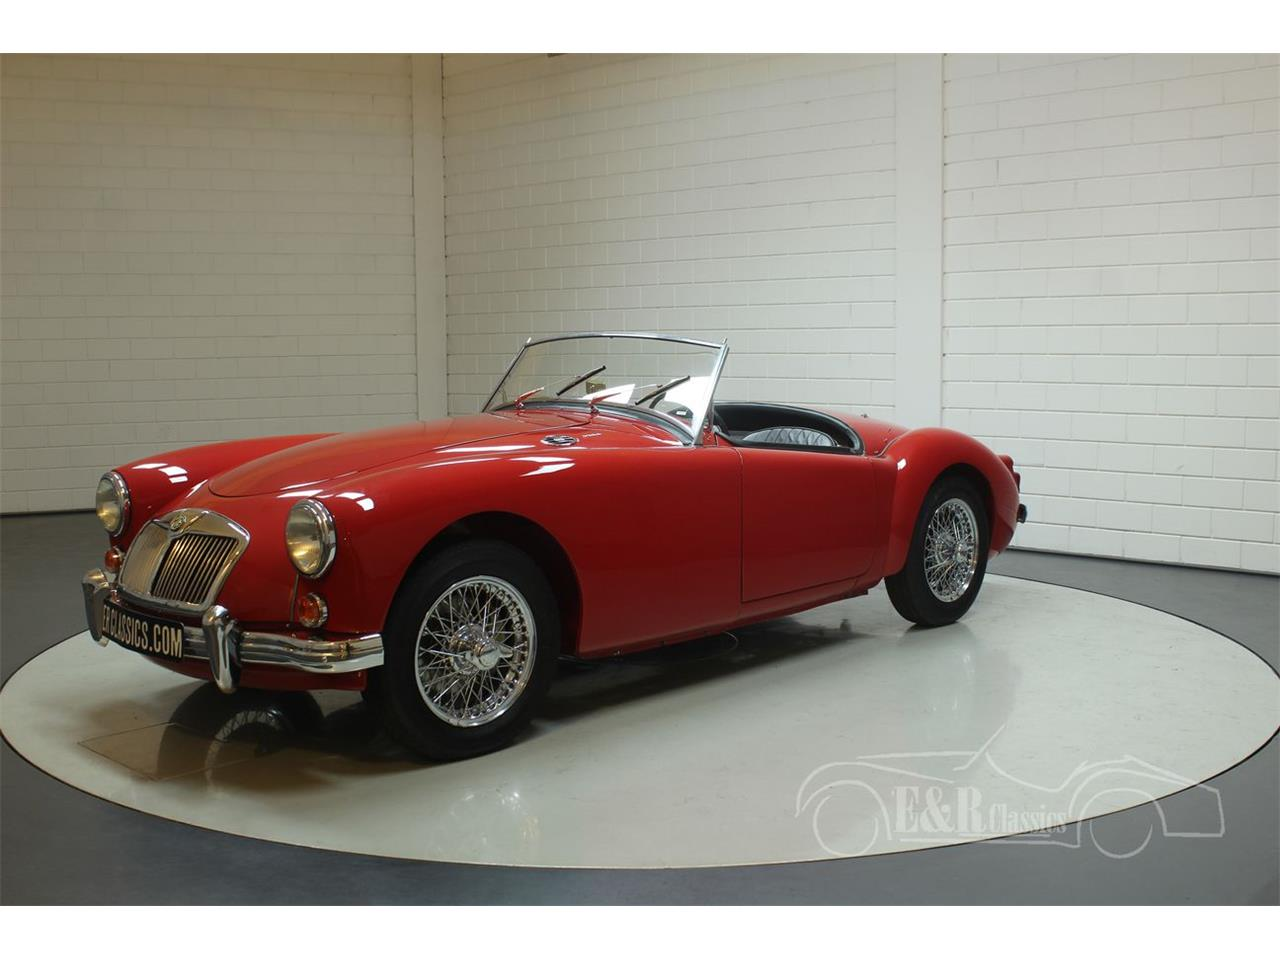 Large Picture of Classic '59 MG MGA located in - Keine Angabe - - $56,500.00 - PGST